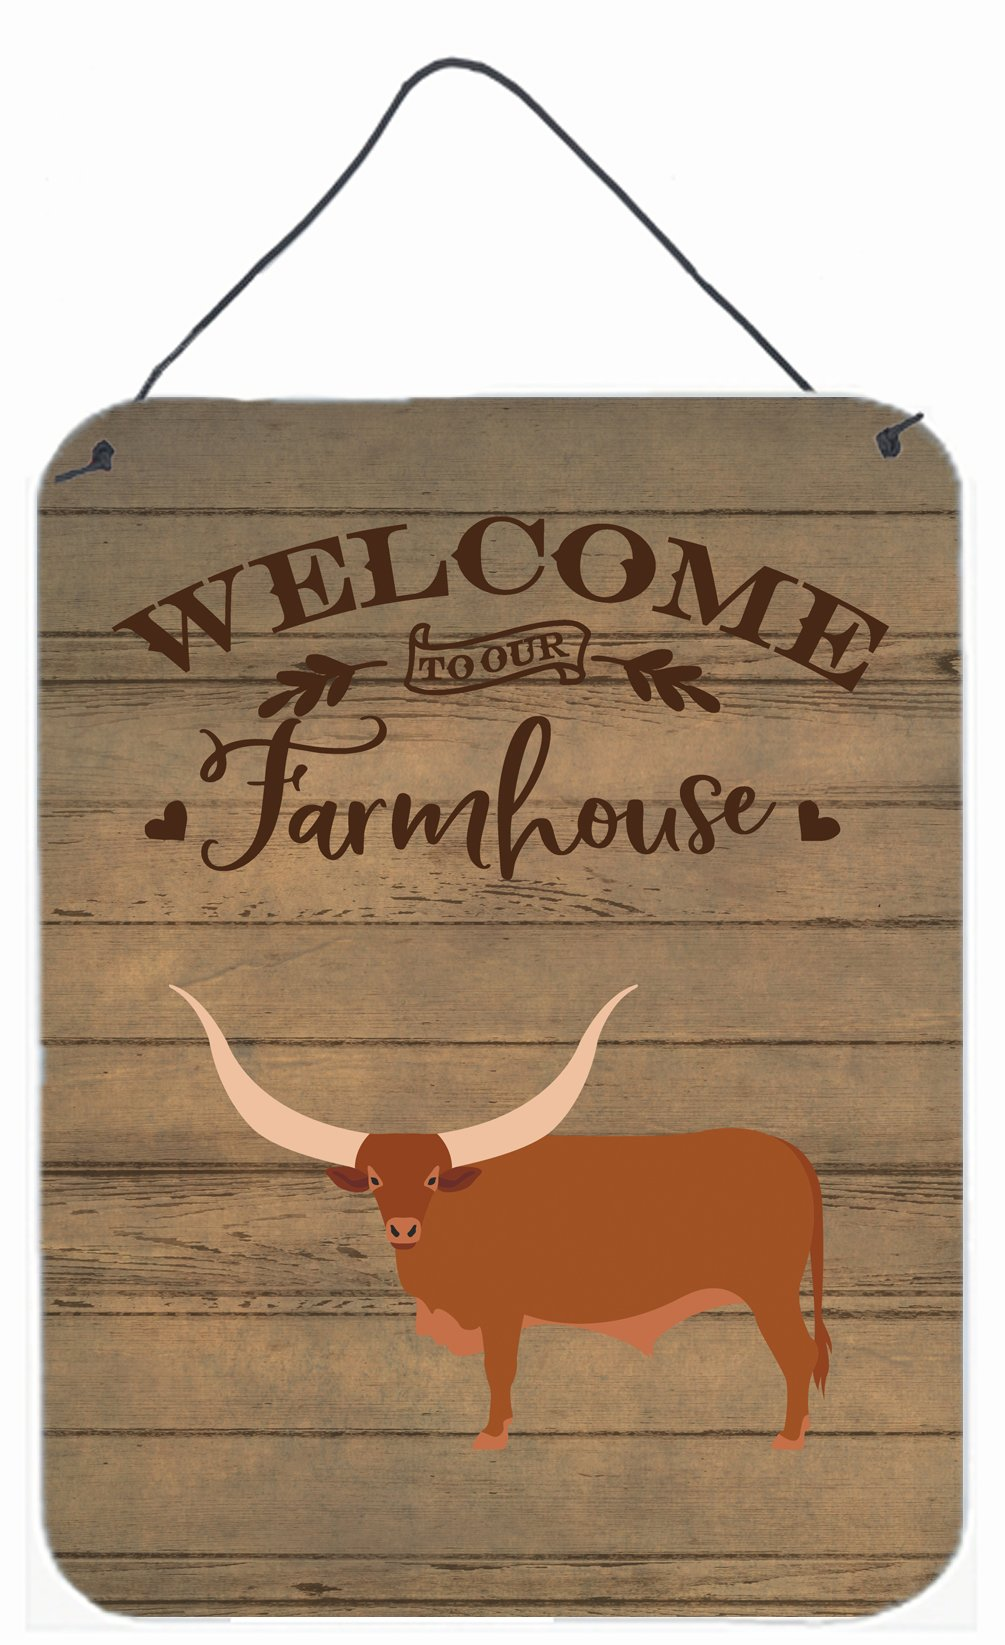 Ankole-Watusu Cow Welcome Wall or Door Hanging Prints CK6767DS1216 by Caroline's Treasures